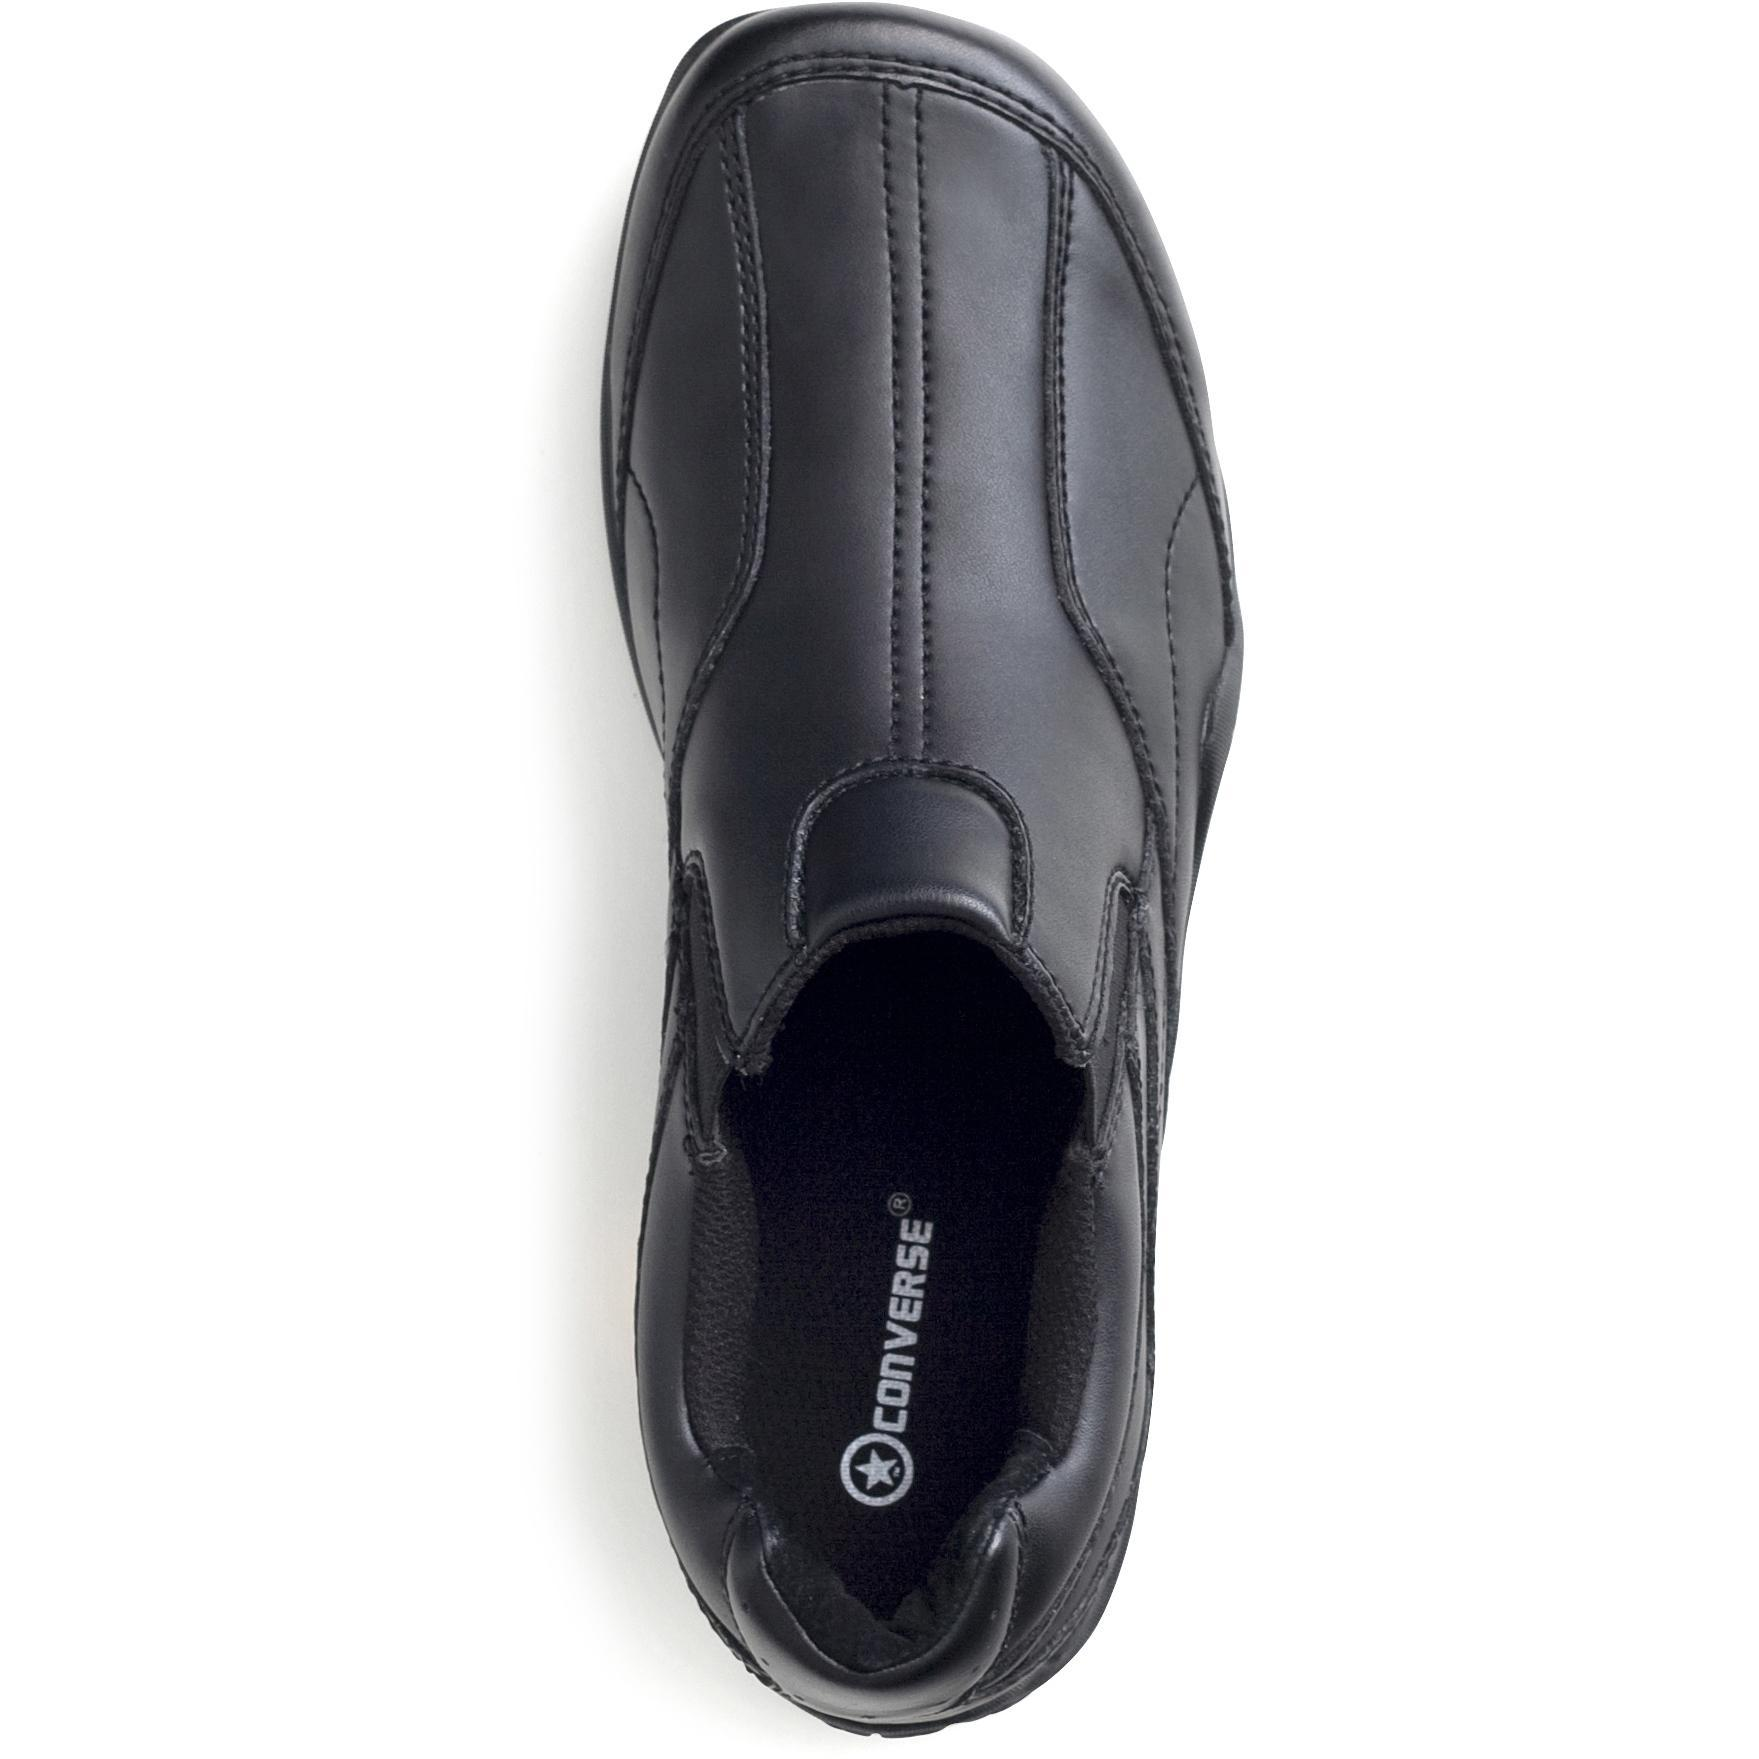 converse slip resistant slip on work shoes lehigh safety